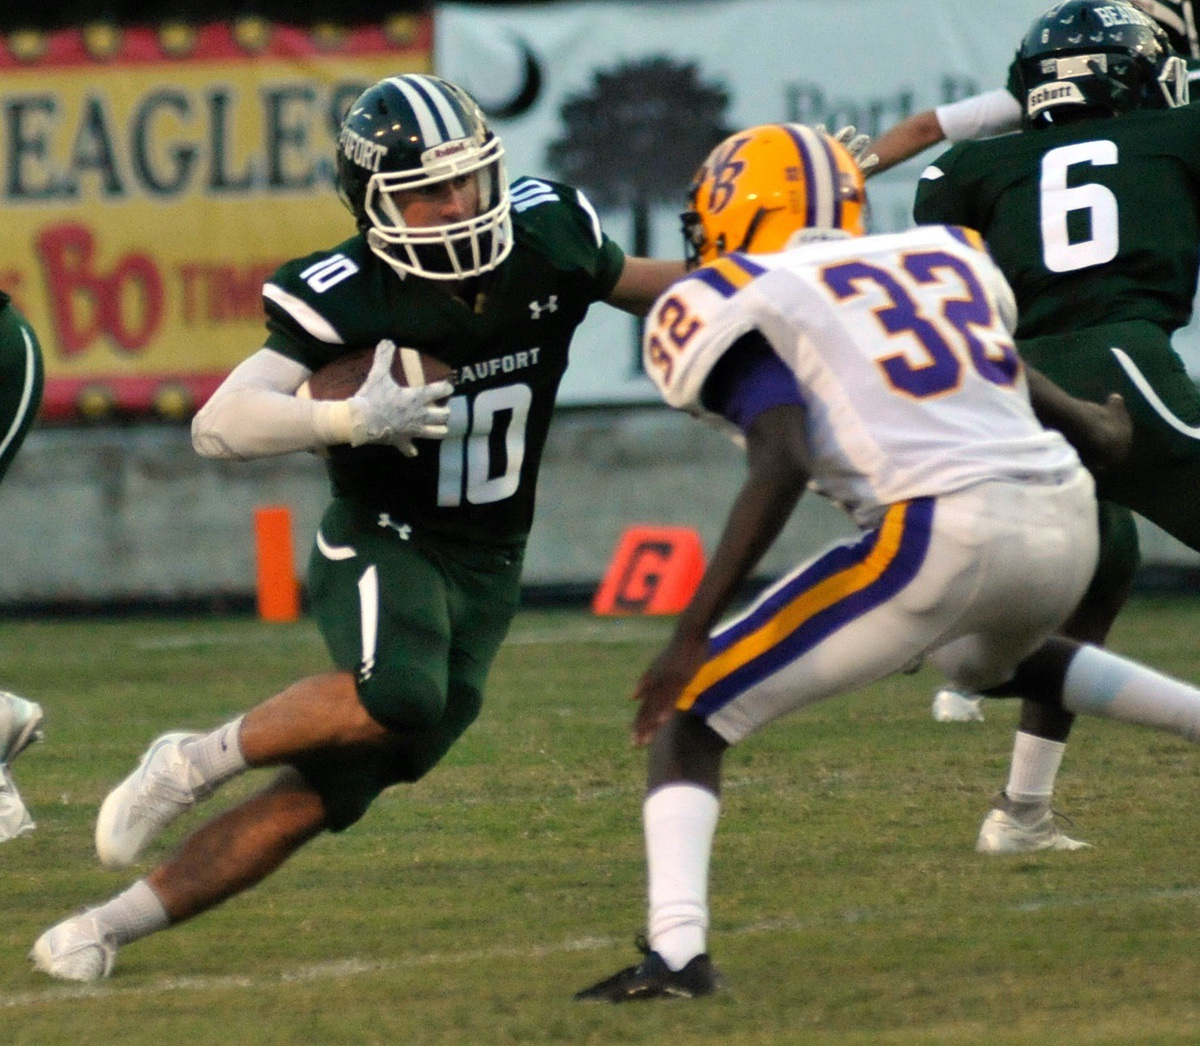 """Beaufort's Wyatt """"White Lightning"""" Sherpensky, left, weaves his way through the Whale Branch defense to score his first touchdown of the Sept. 9. Photo by Bob Sofaly."""